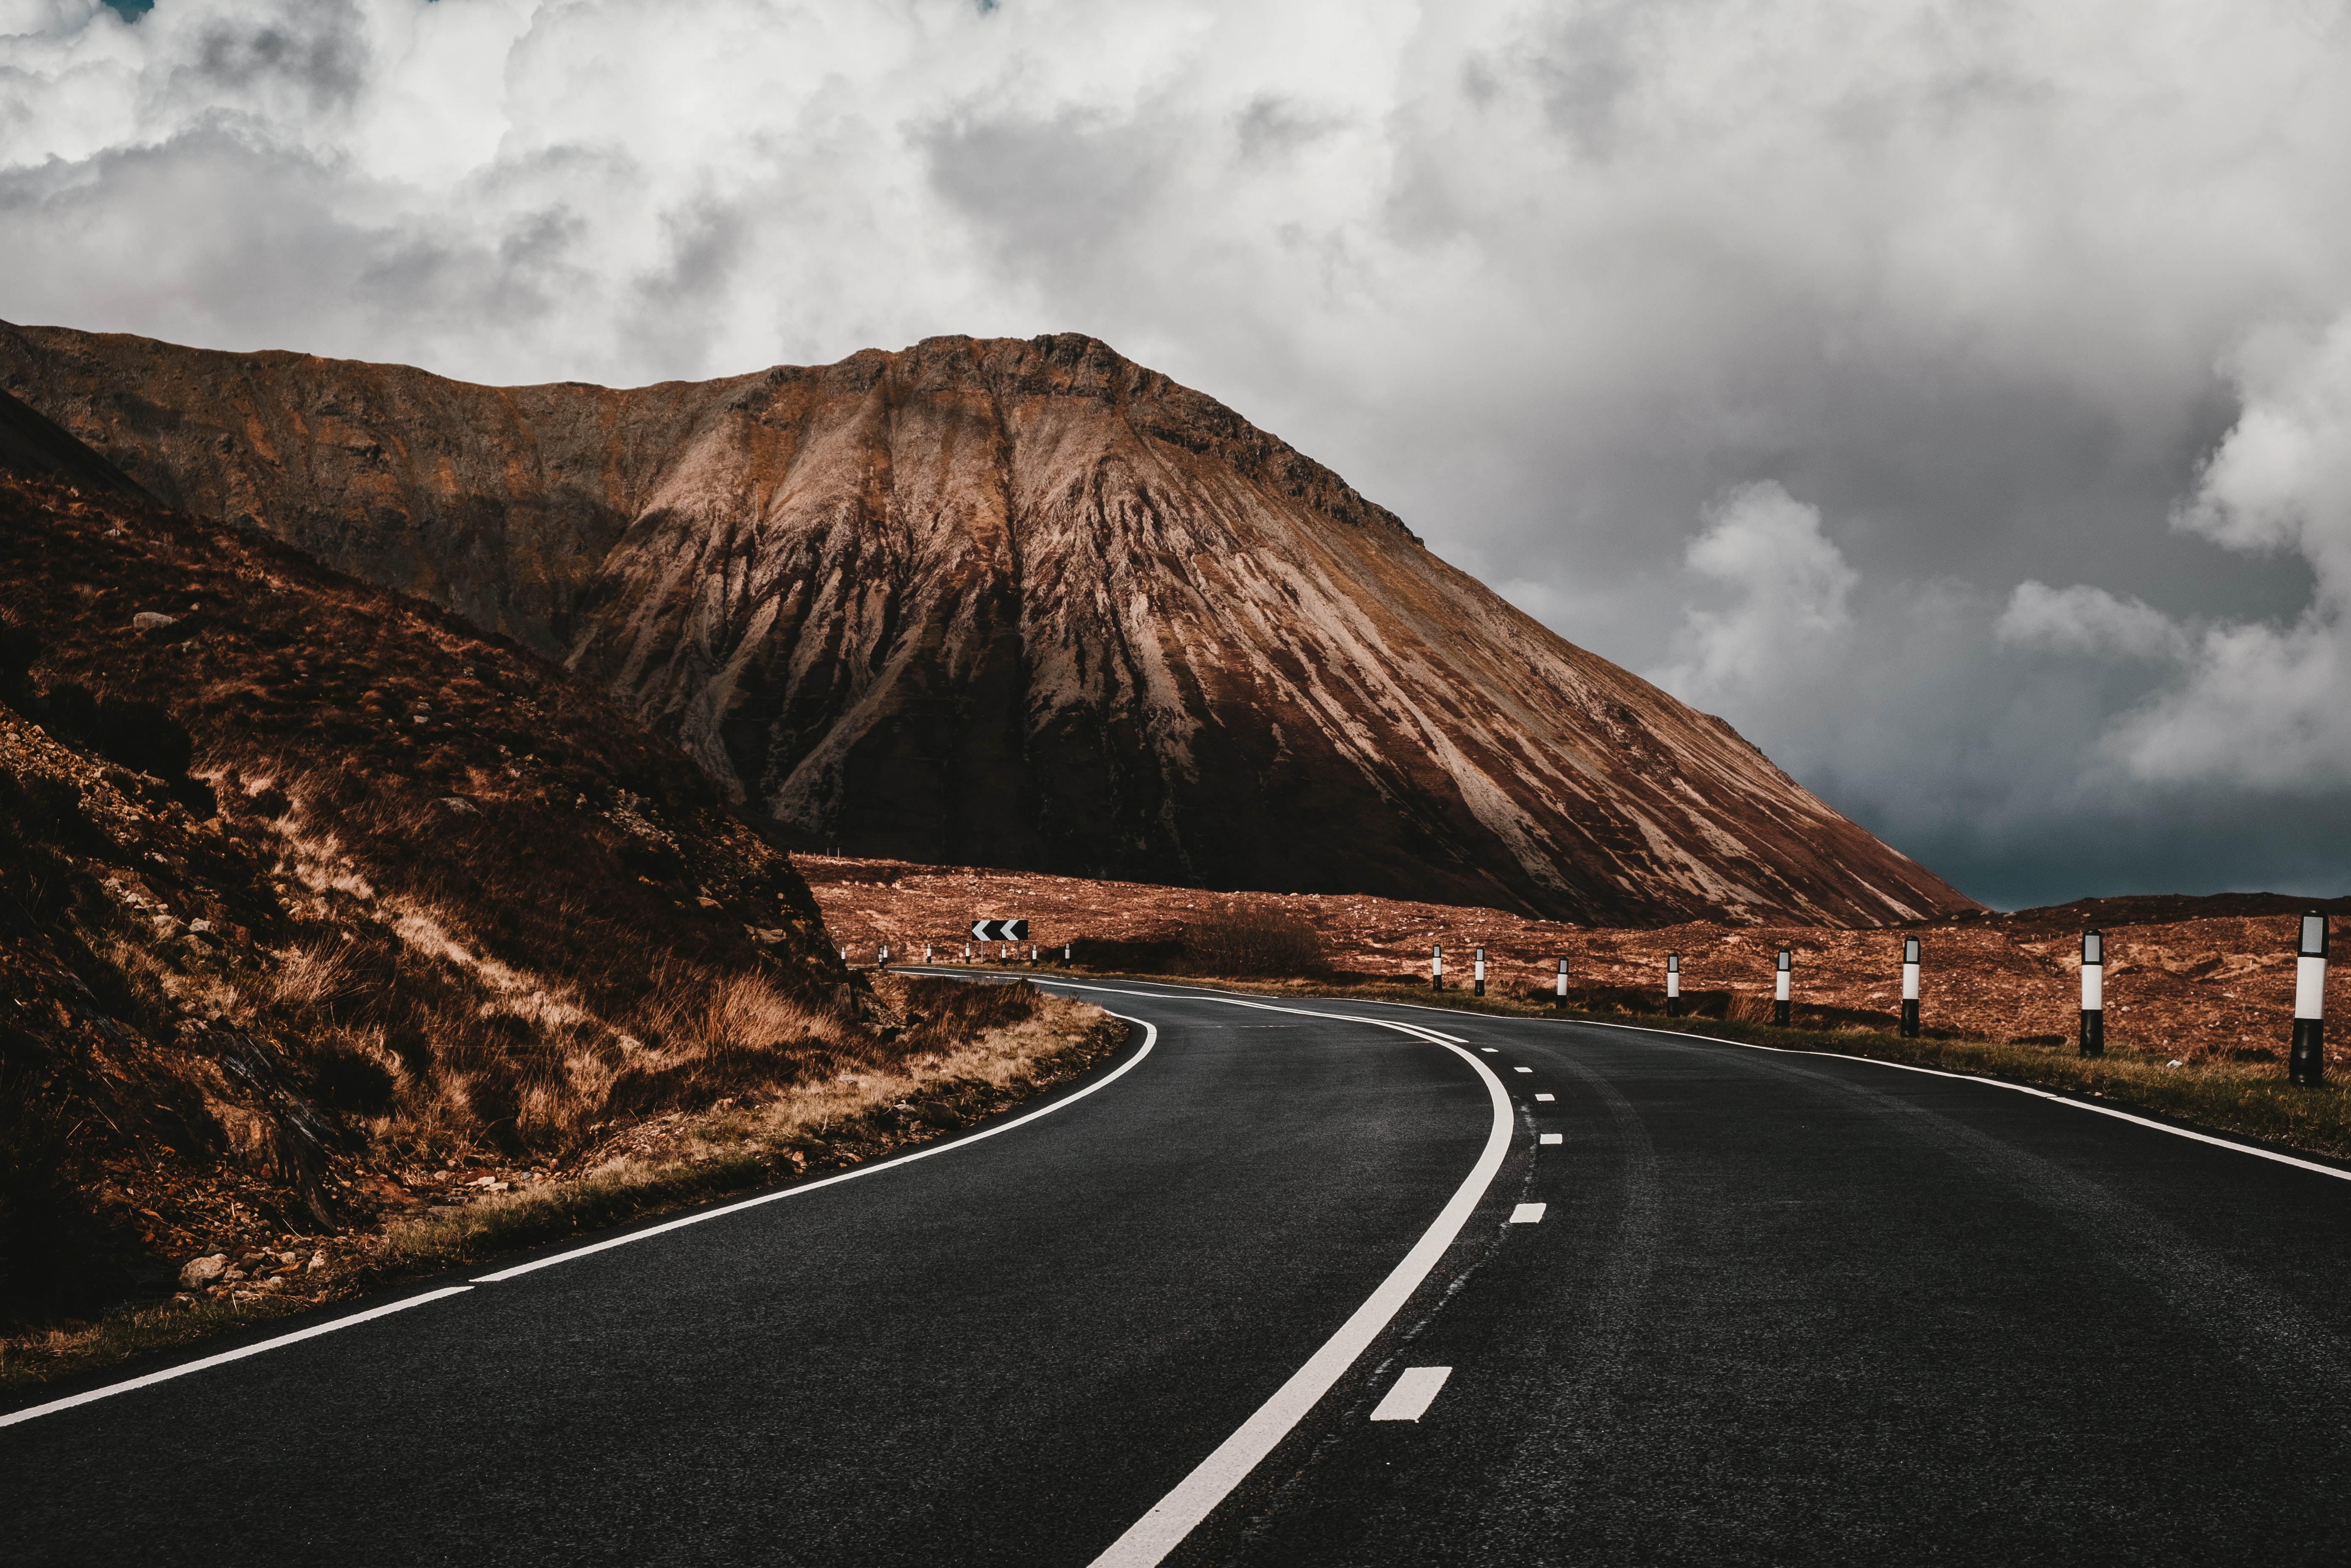 asphalt road near mountain